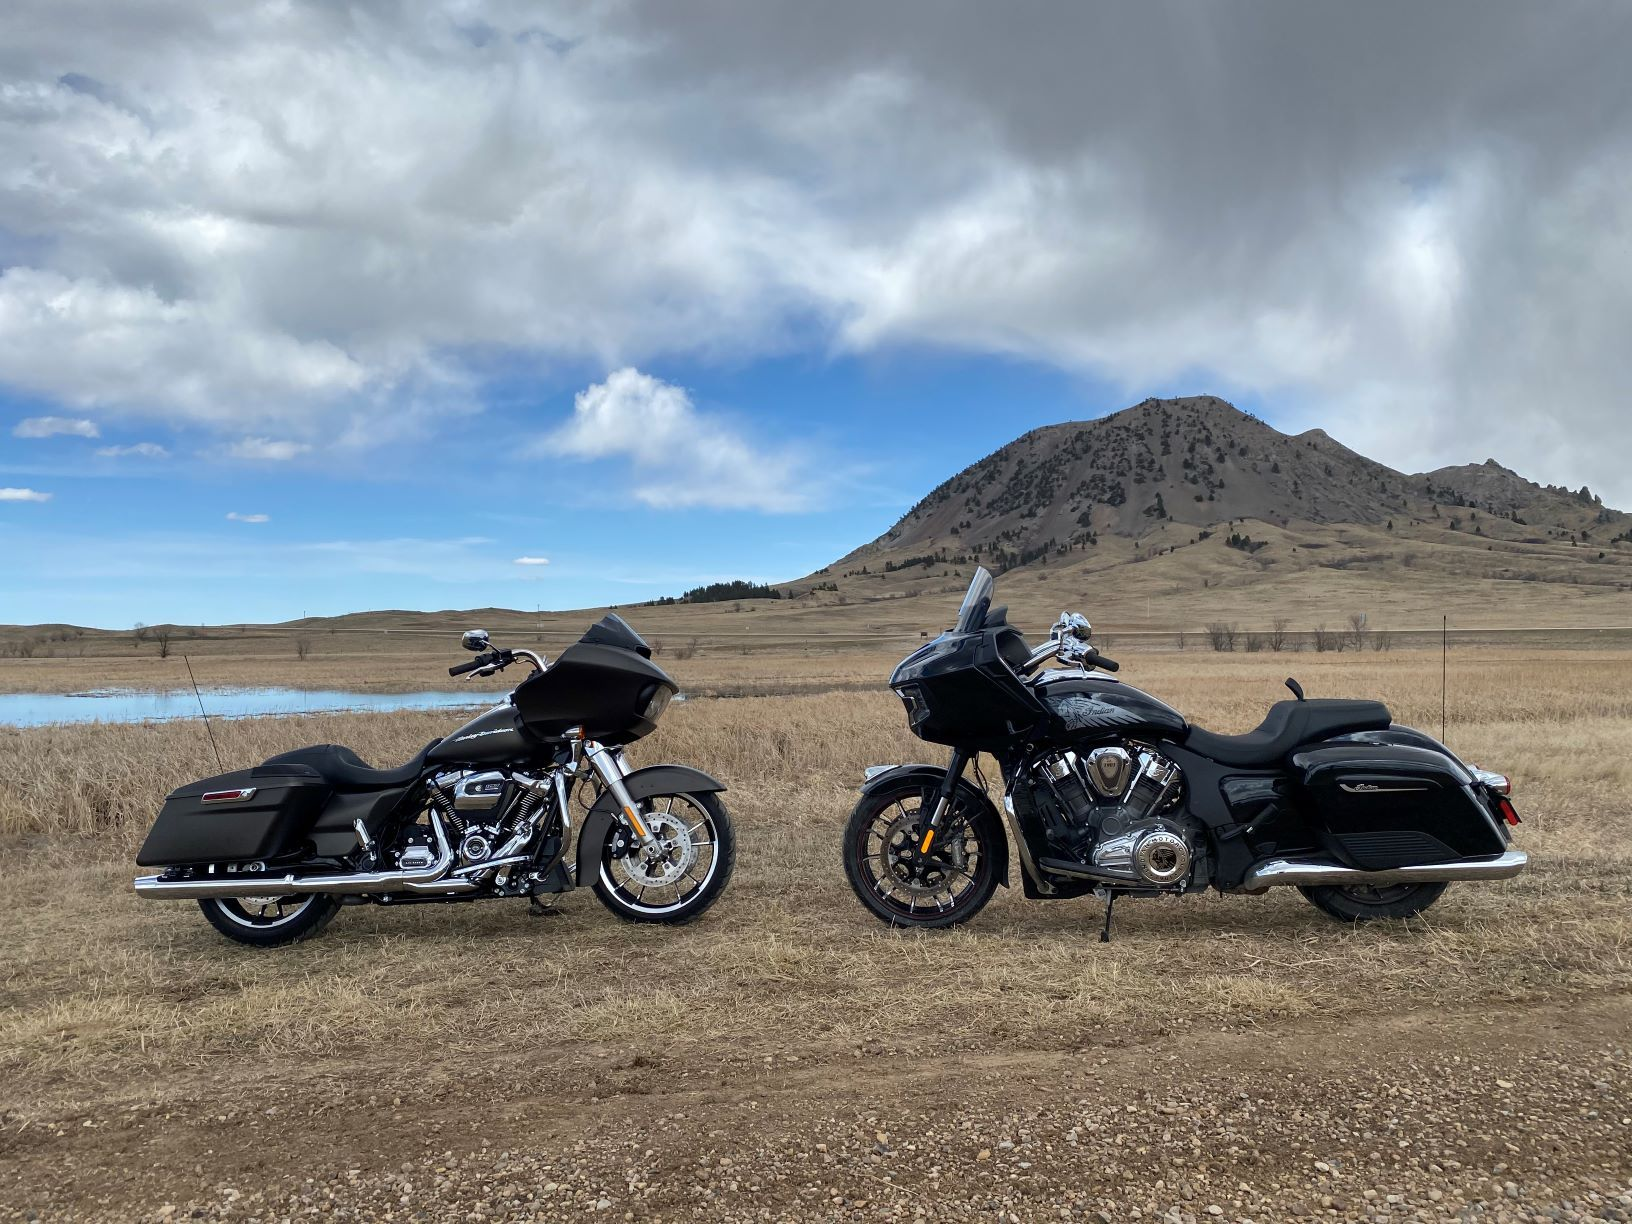 2020 Indian Challenger vs 2020 Road Glide : Is There a New Performance Bagger Sheriff in Town?